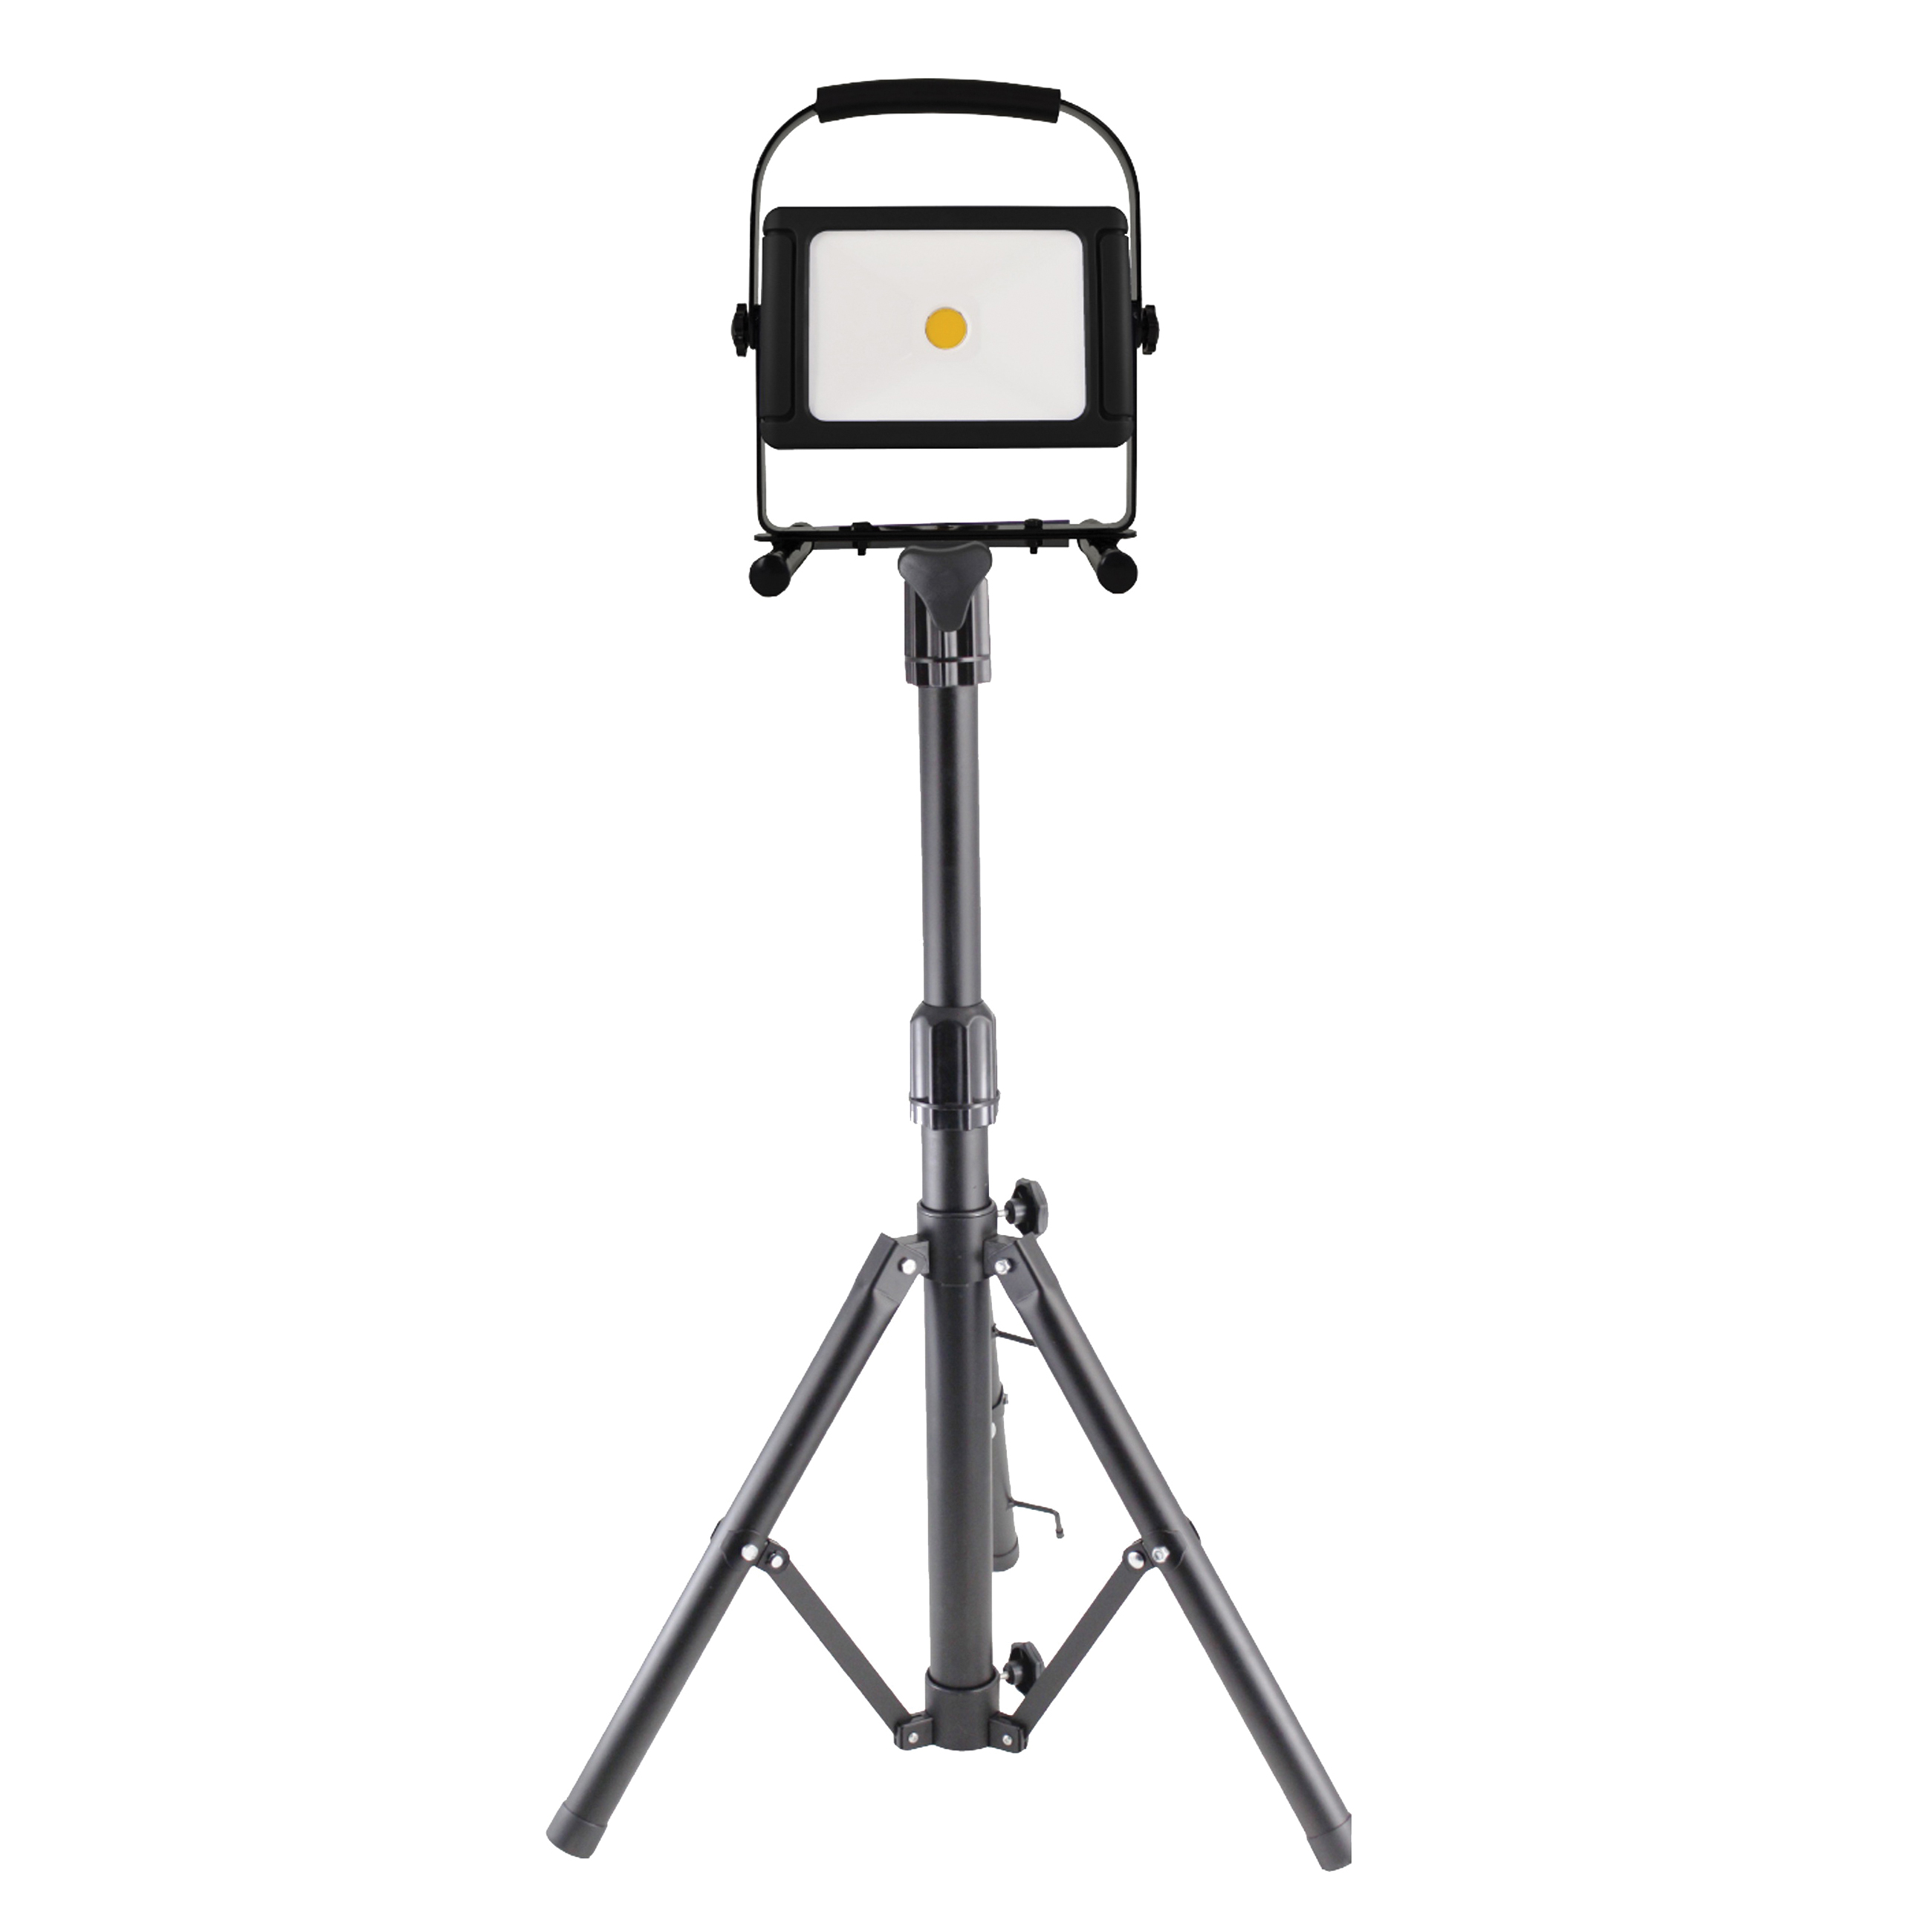 Picture of PowerZone O-D4000TH-QR-U Work Light, 100 to 240 VAC, 42 W, 2-Lamp, LED Lamp, 4000 Lumens, 4000 K Color Temp